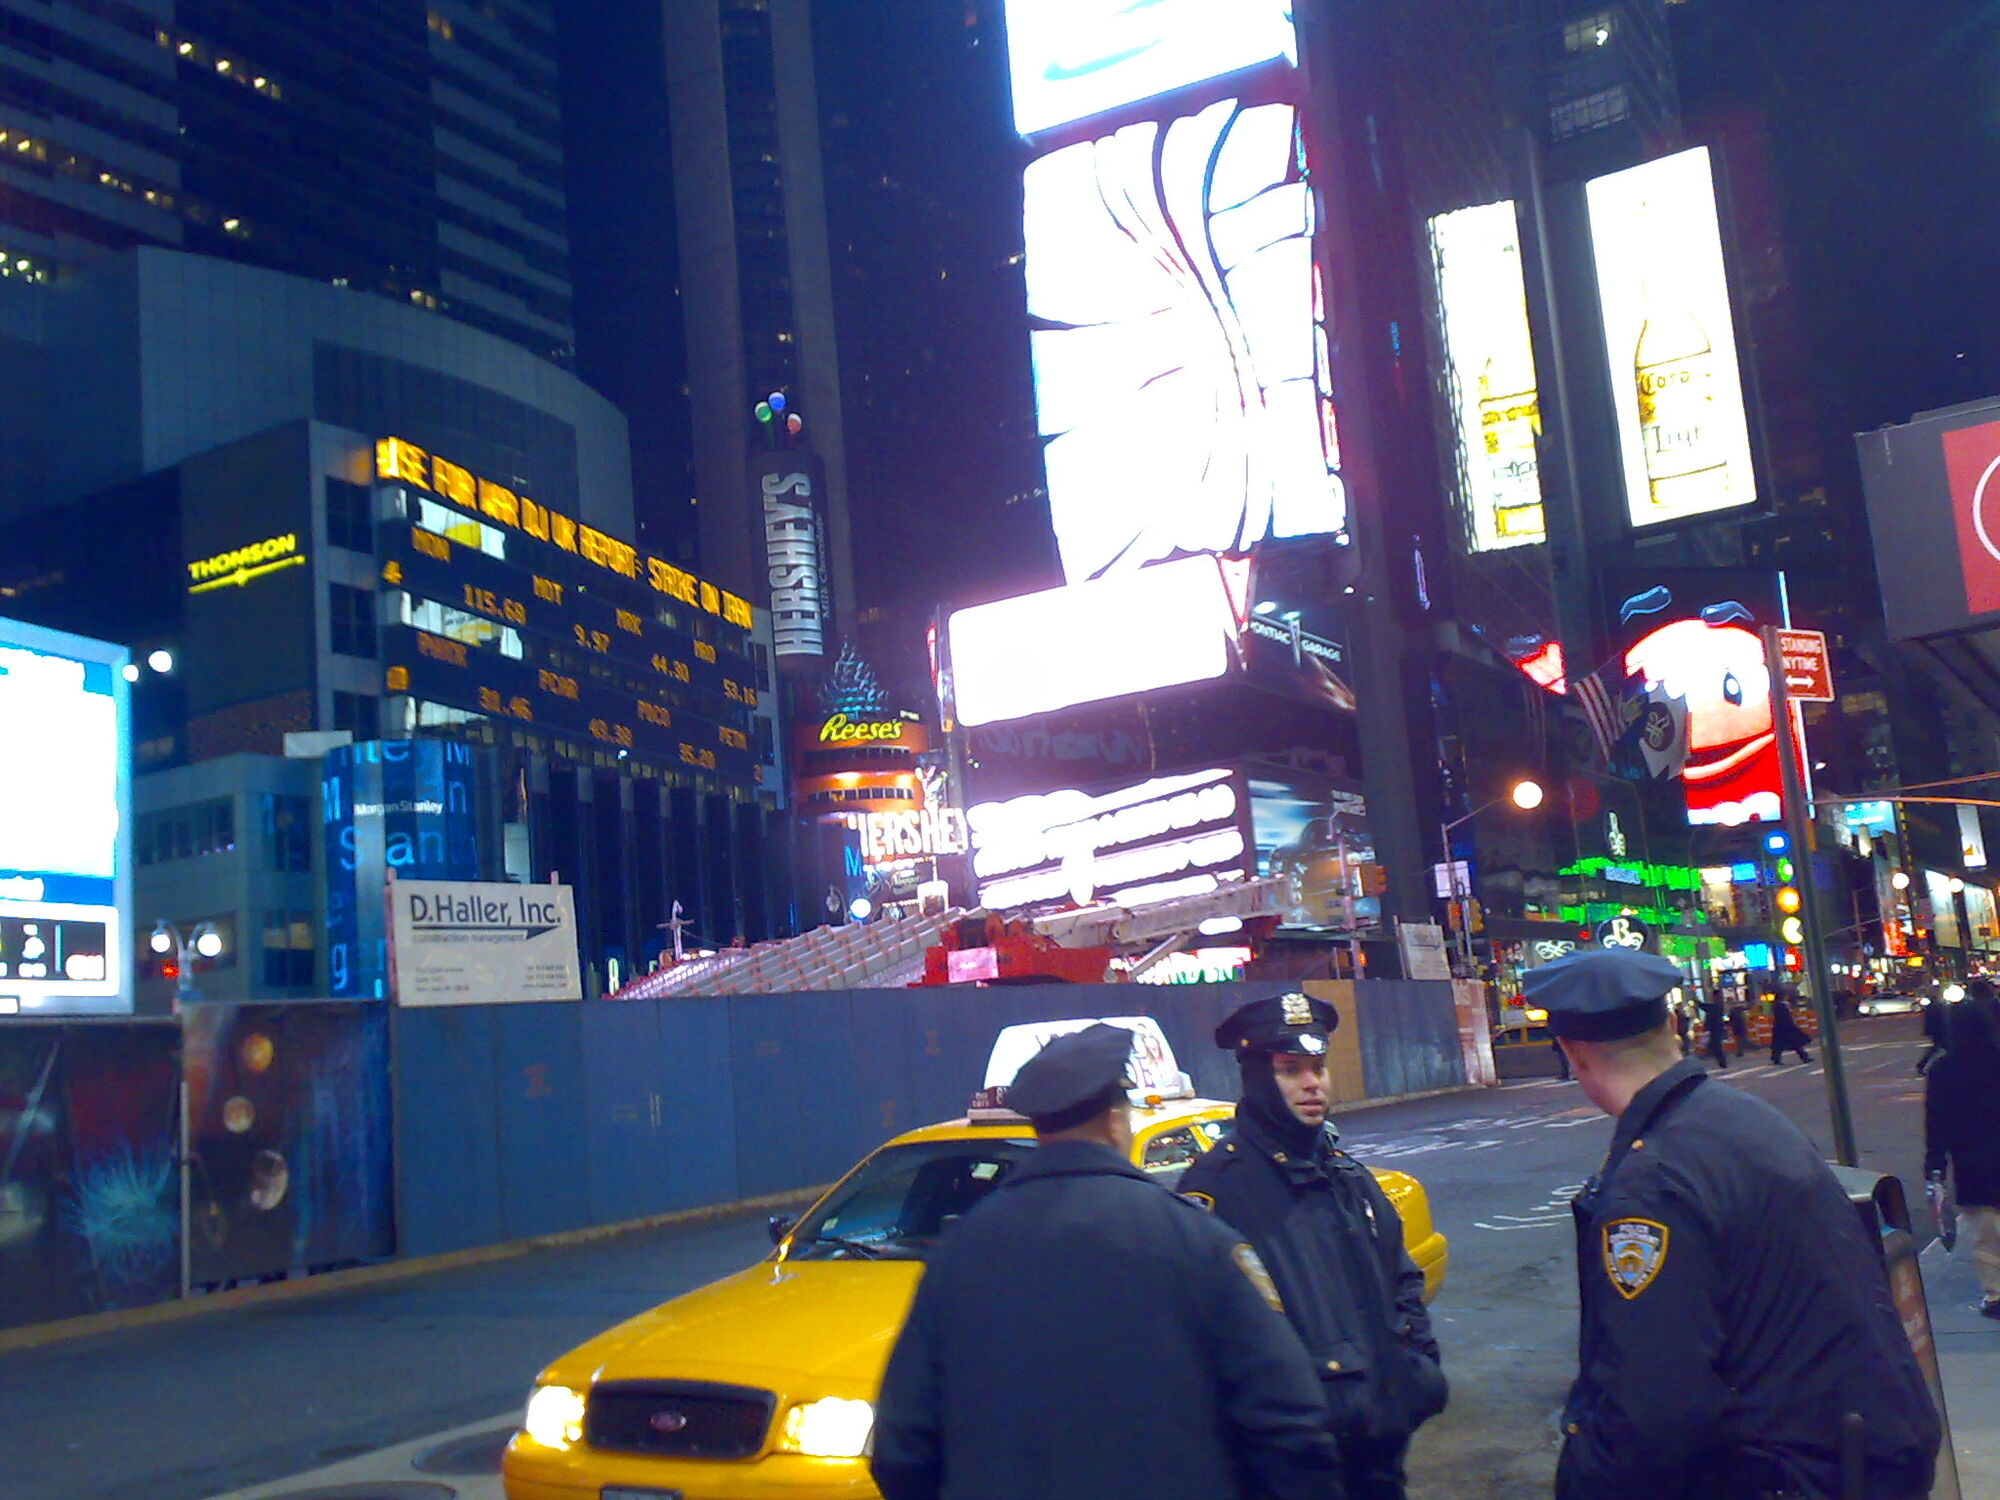 NYPD on duty